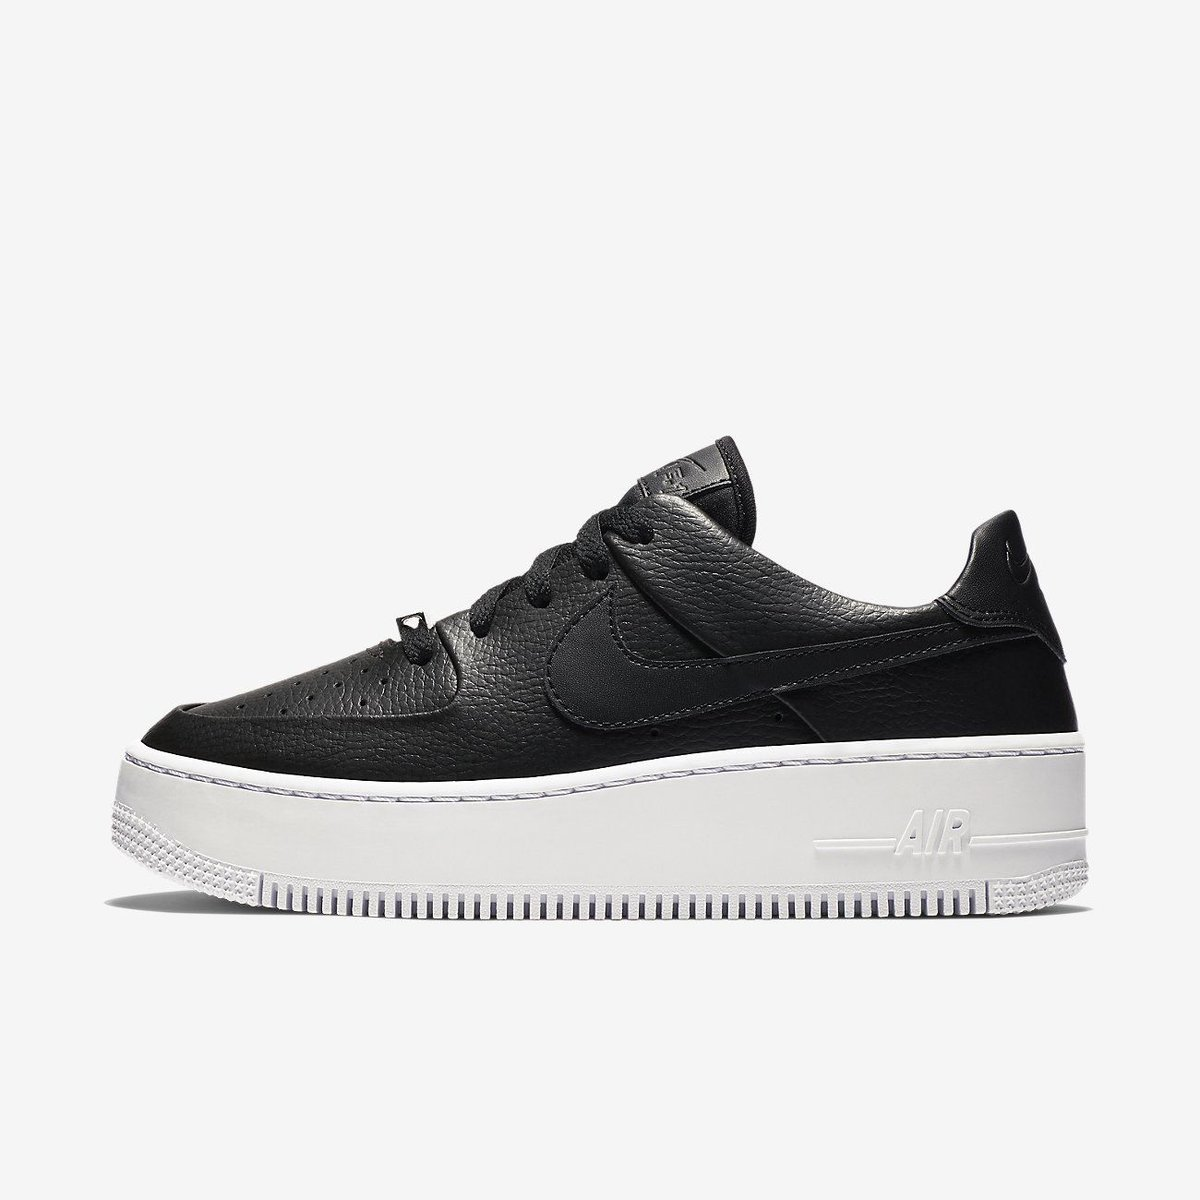 LIVE Women s Nike Air Force 1 Sage Lows Finish Line  http   bit.ly 2xYGdZA  Foot Locker  http   bit.ly 2xVBZlB Eastbay  http   bit.ly 2P8BL0Z ... 7ee2685cec